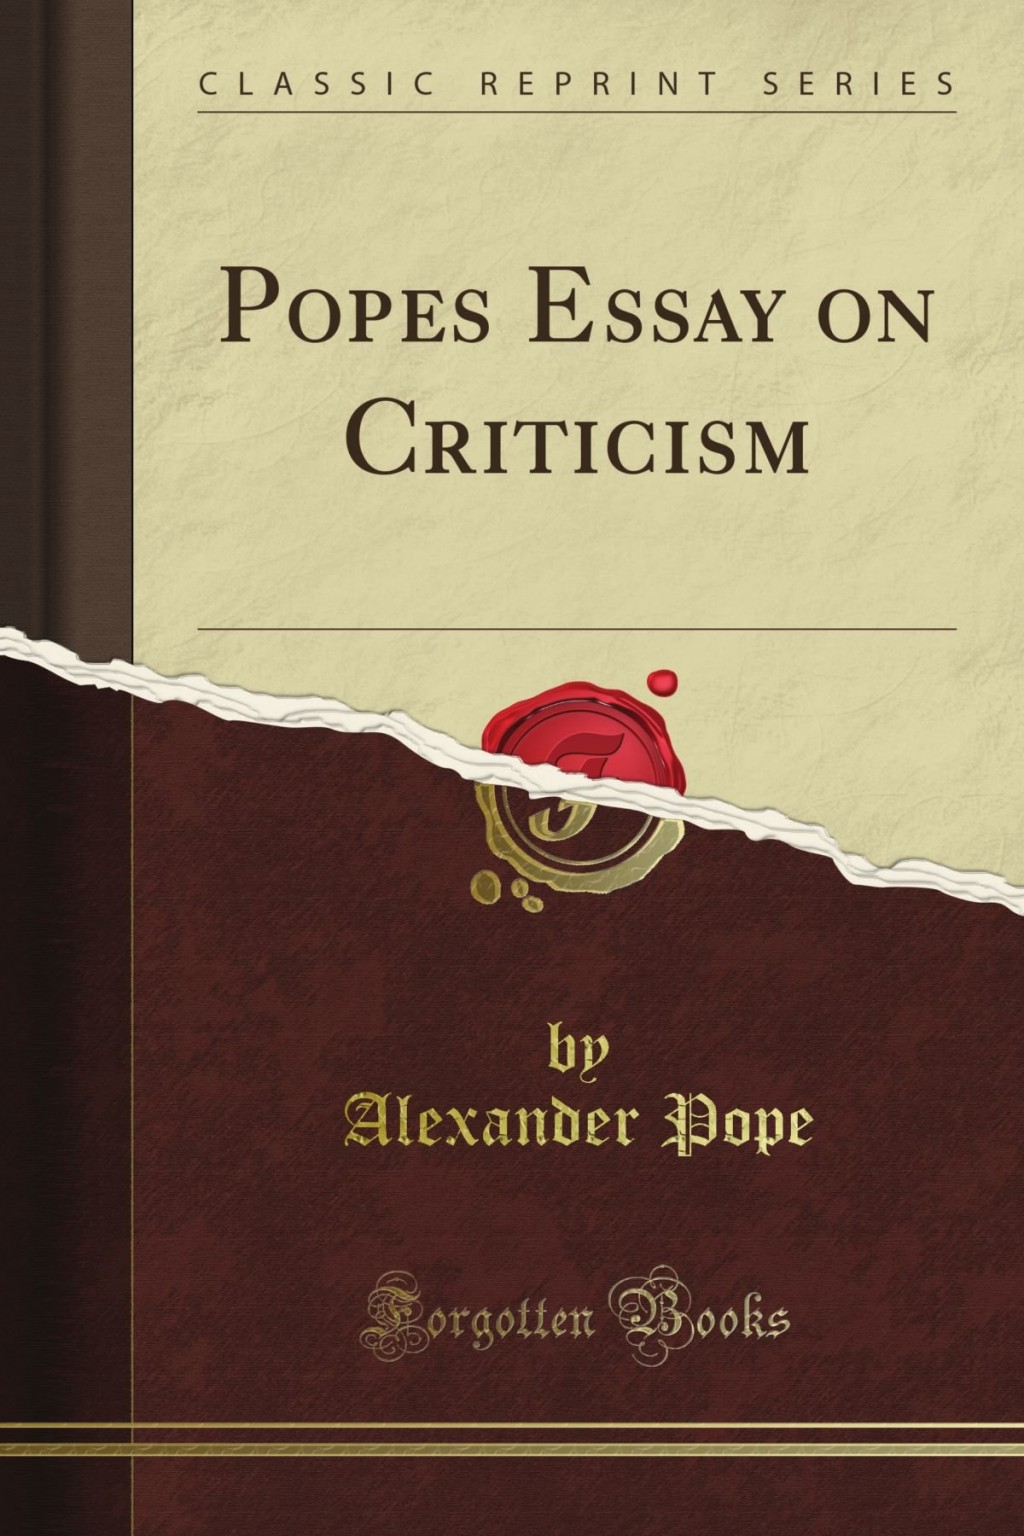 012 Pope Essay On Criticism Example Unique Part 2 Pope's Was Written In Large